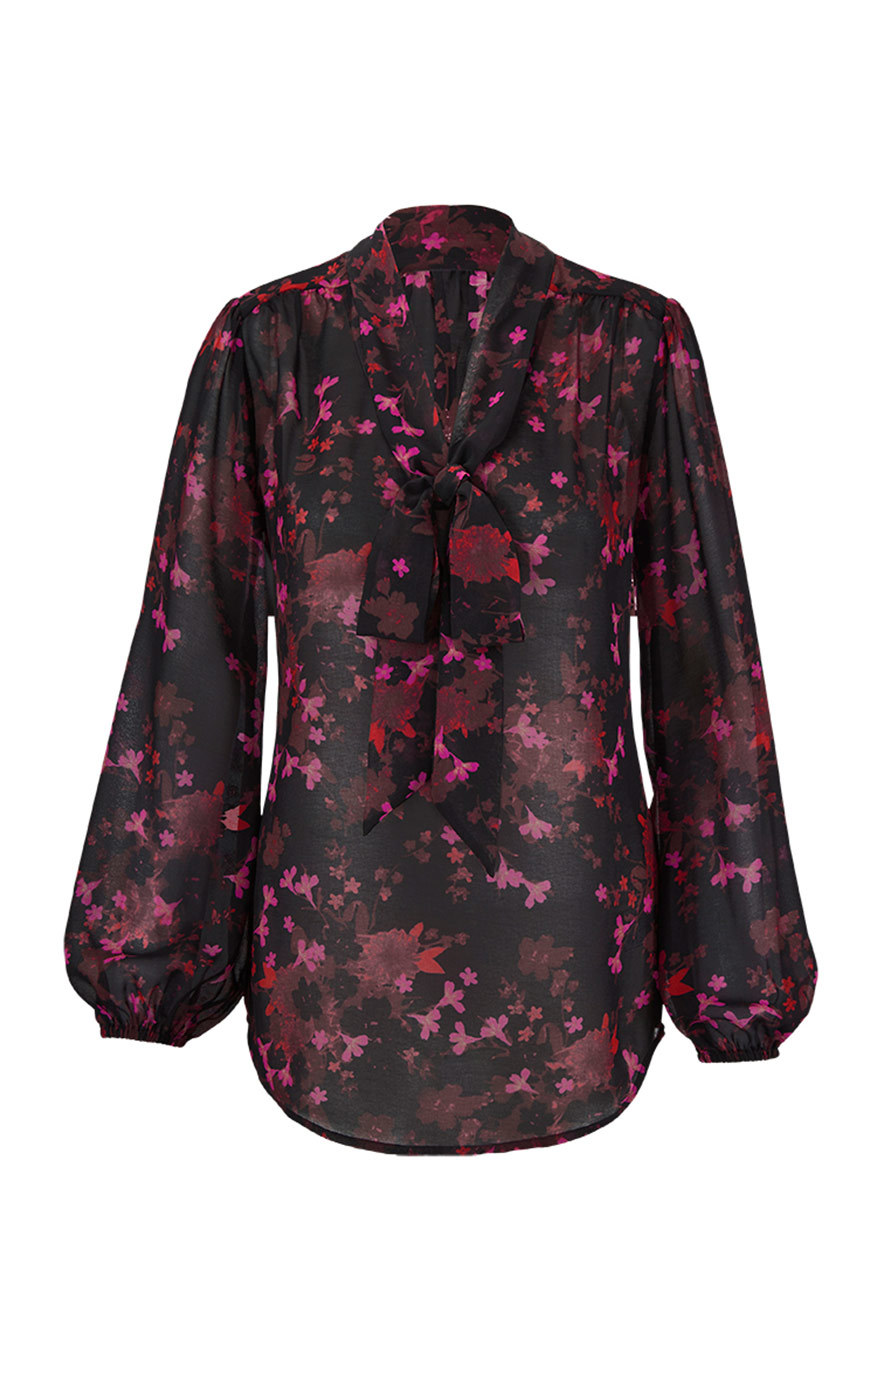 cabi's Candlelight Blouse